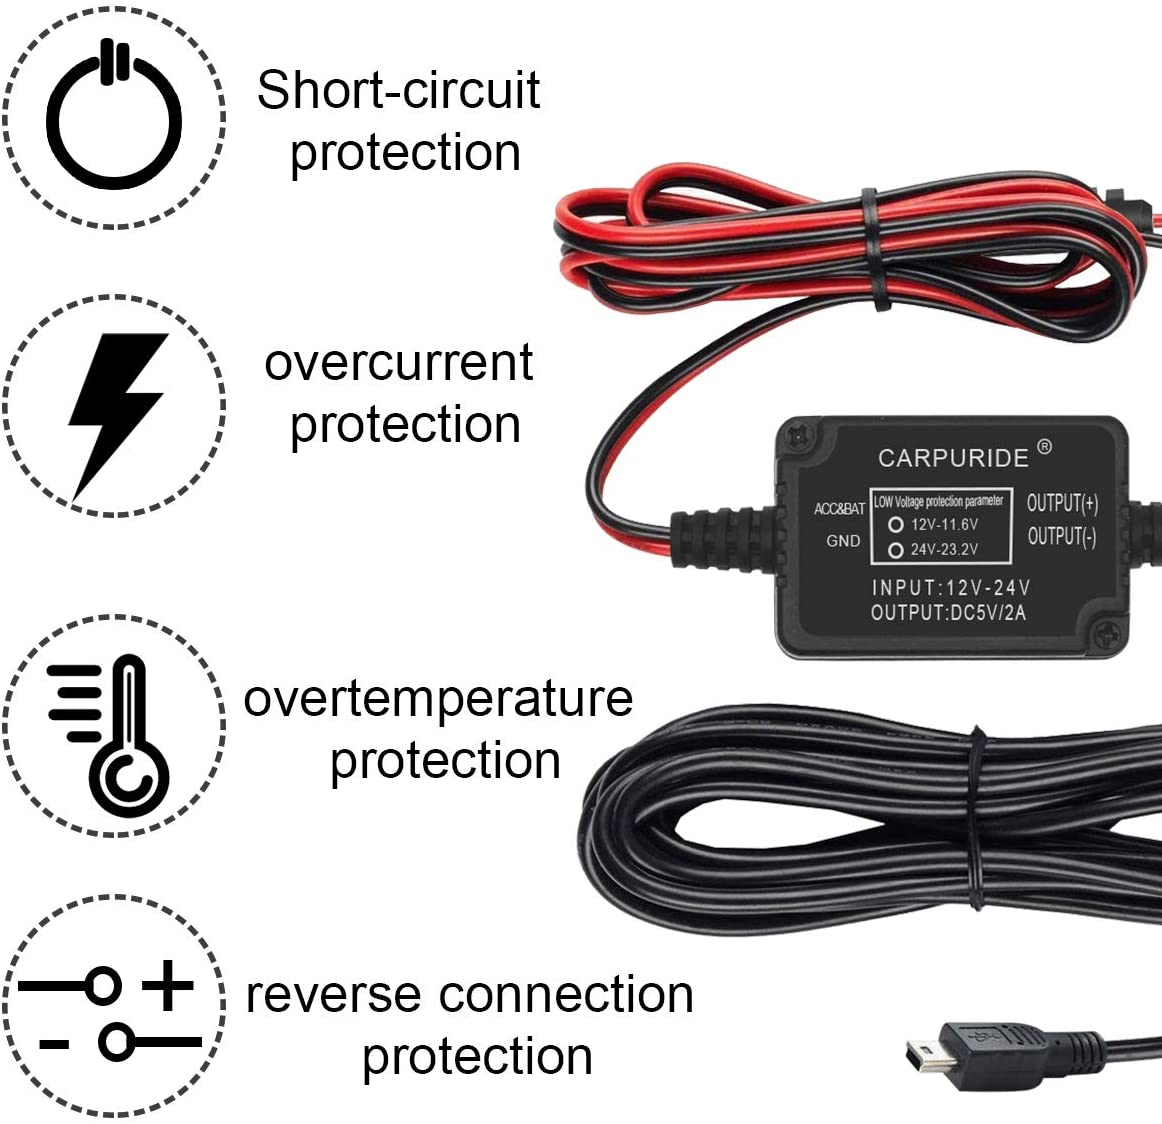 Dash Cam Hardwire Kit, Micro USB Port, DC 12V – 24V to 5V 2A Max Car Charger Cable kit with Fuse, Low Voltage Protection for Dash Cam Cameras Micro USB and Fuse Kit